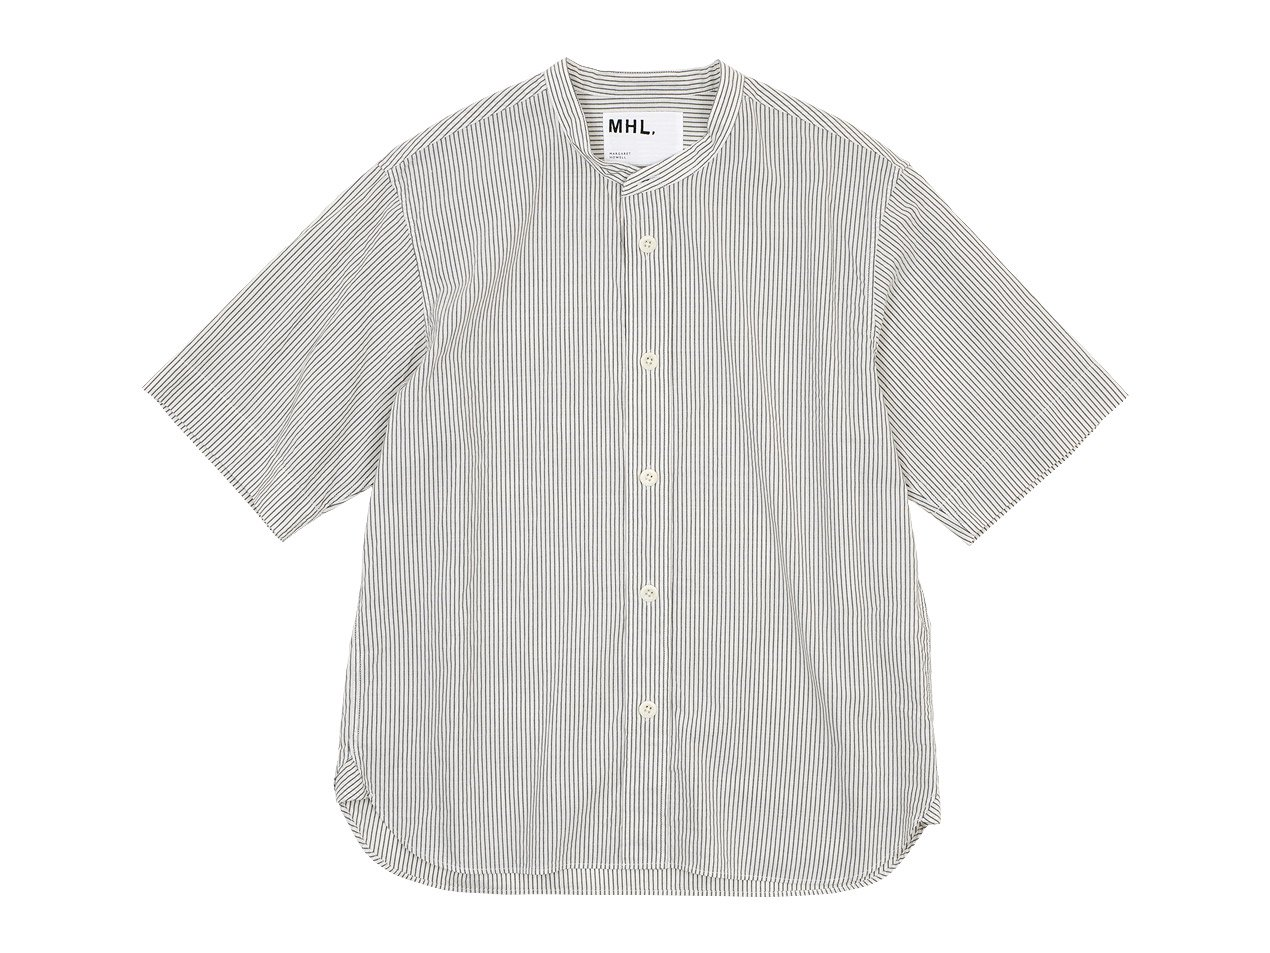 MHL. COTTON LINEN STRIPE S/S SHIRTS 034WHITE 〔メンズ〕